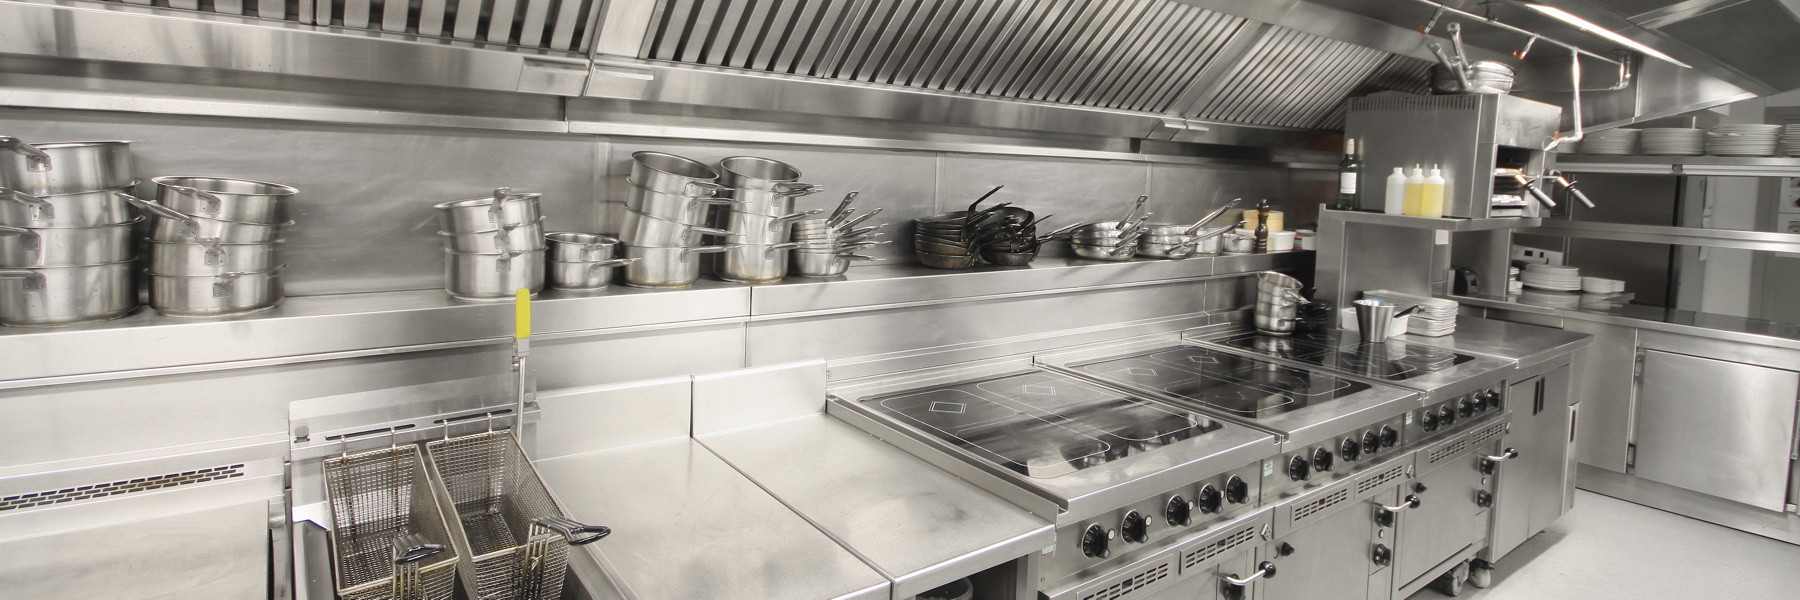 CATERING APPLIANCES FOR PROFESSIONAL KITCHEN